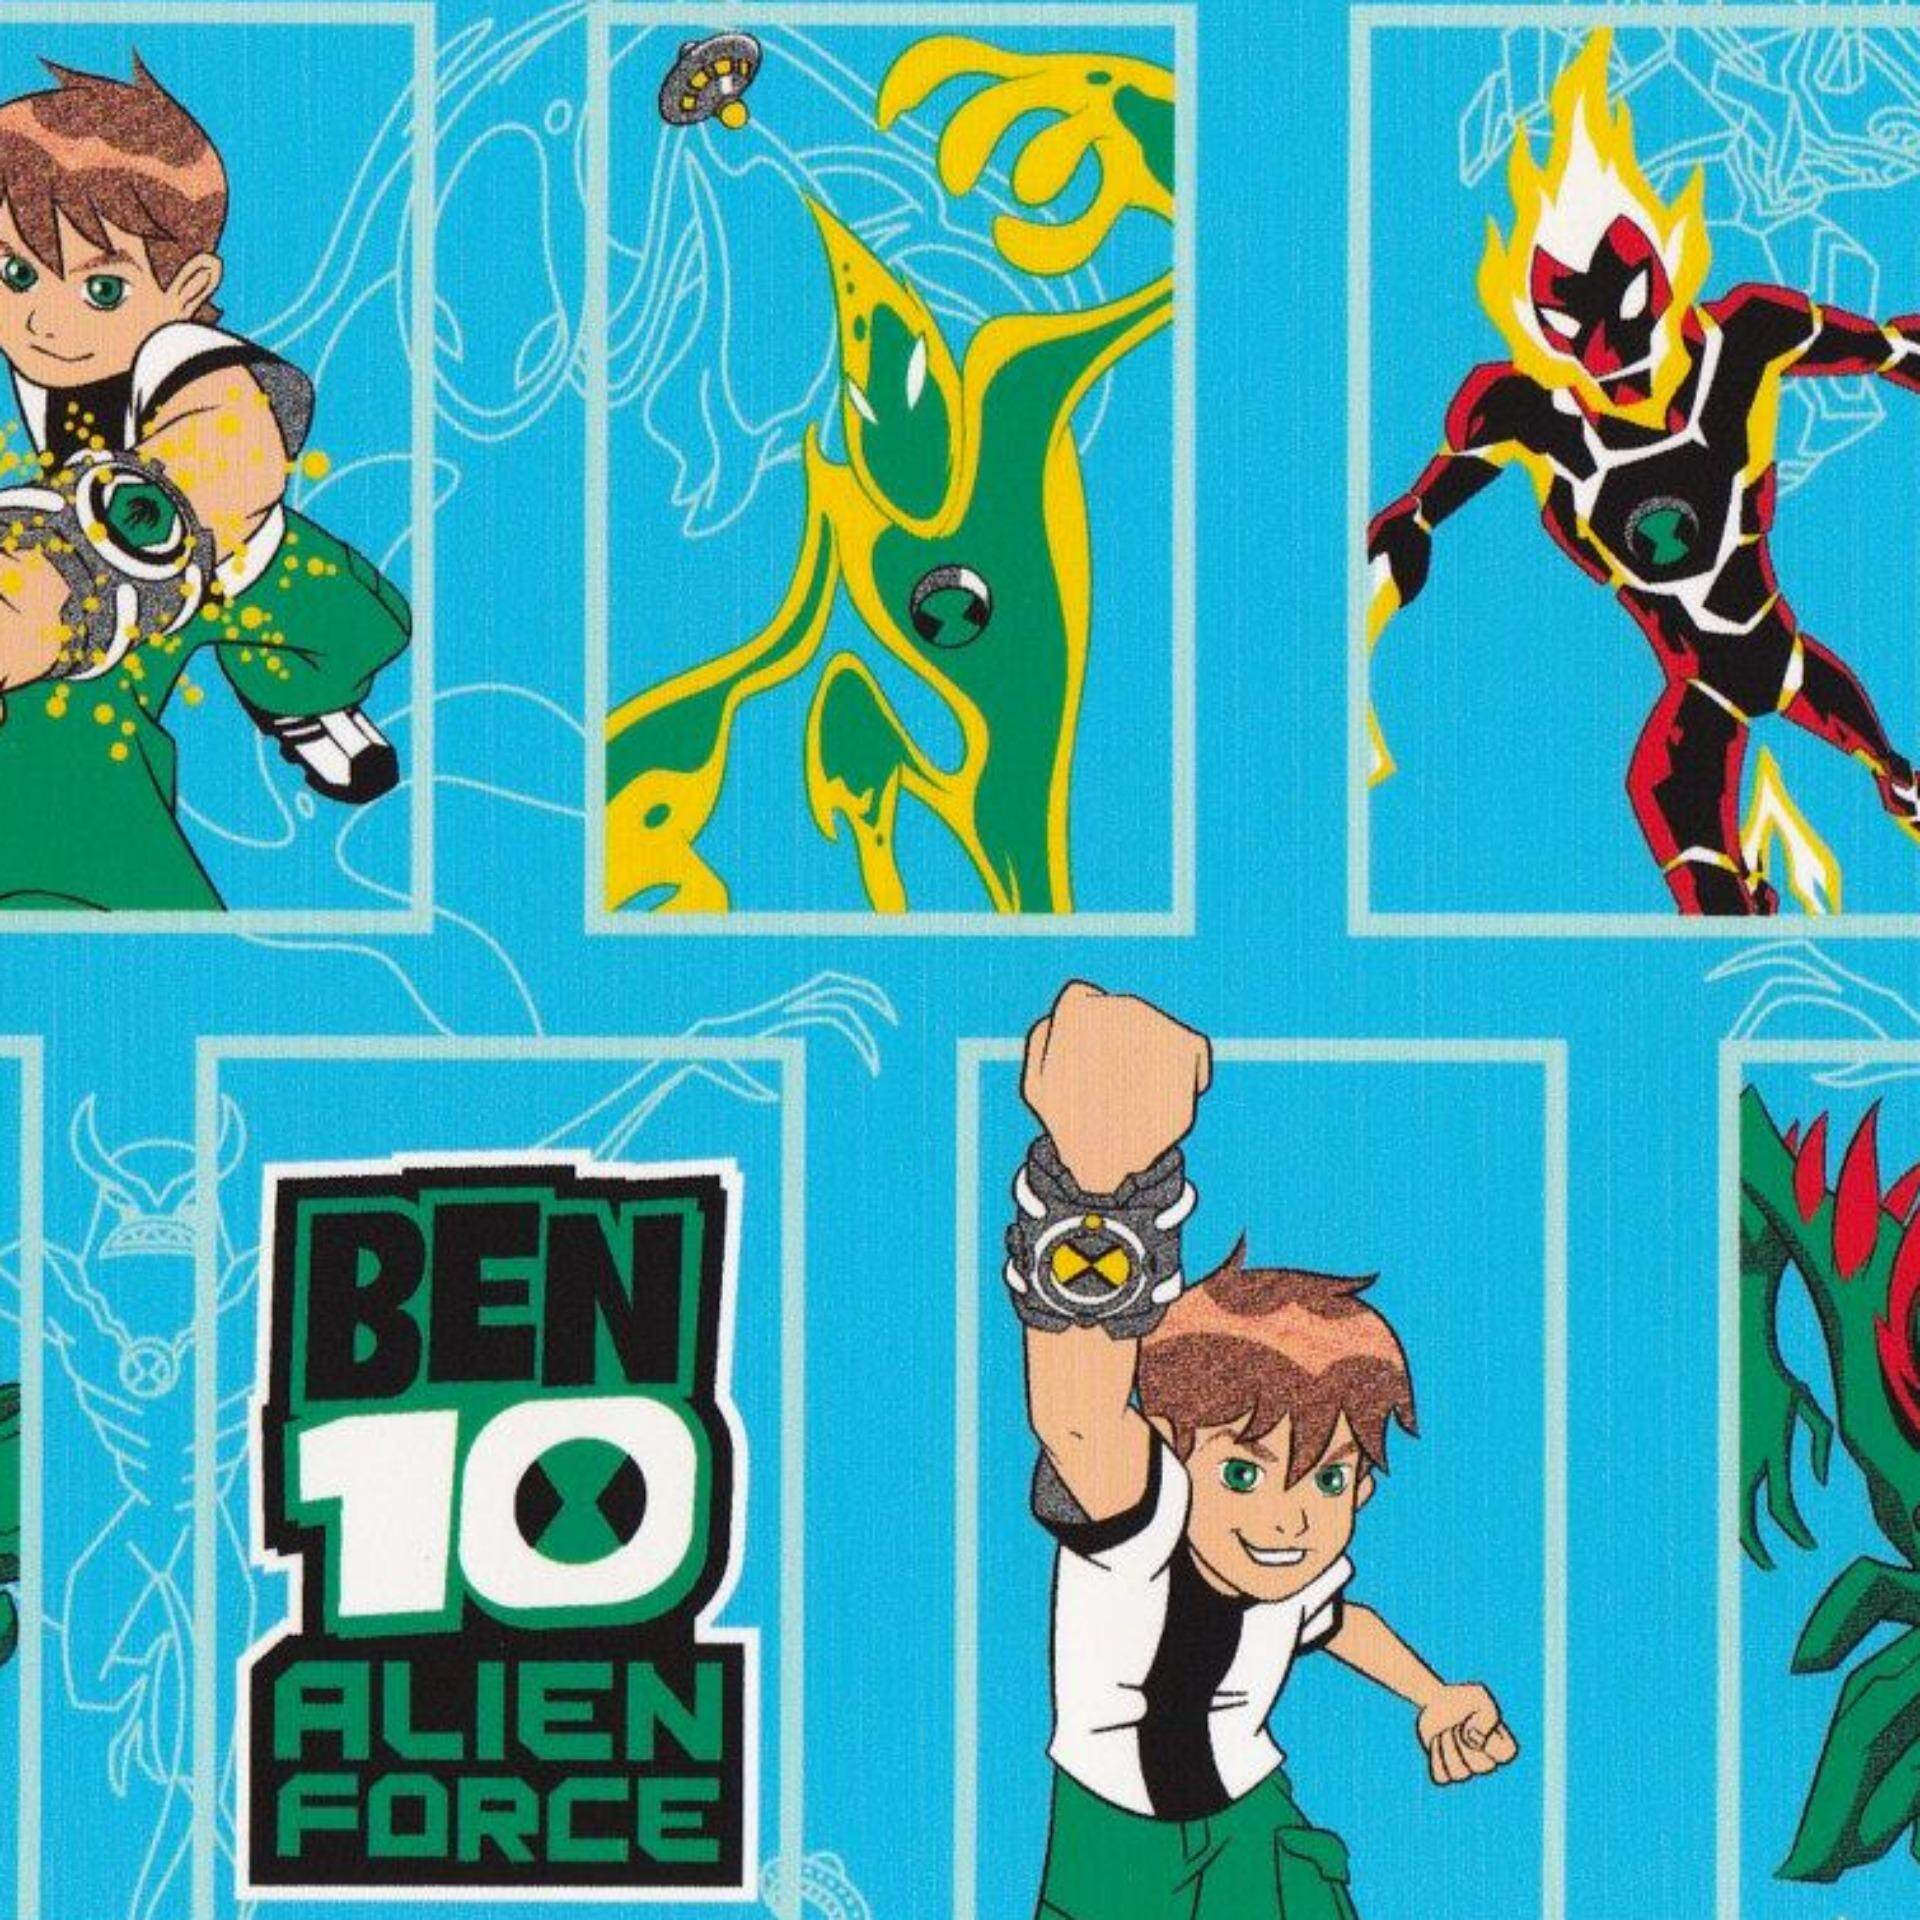 Set Single Bedsheet - BEN 10 BOX